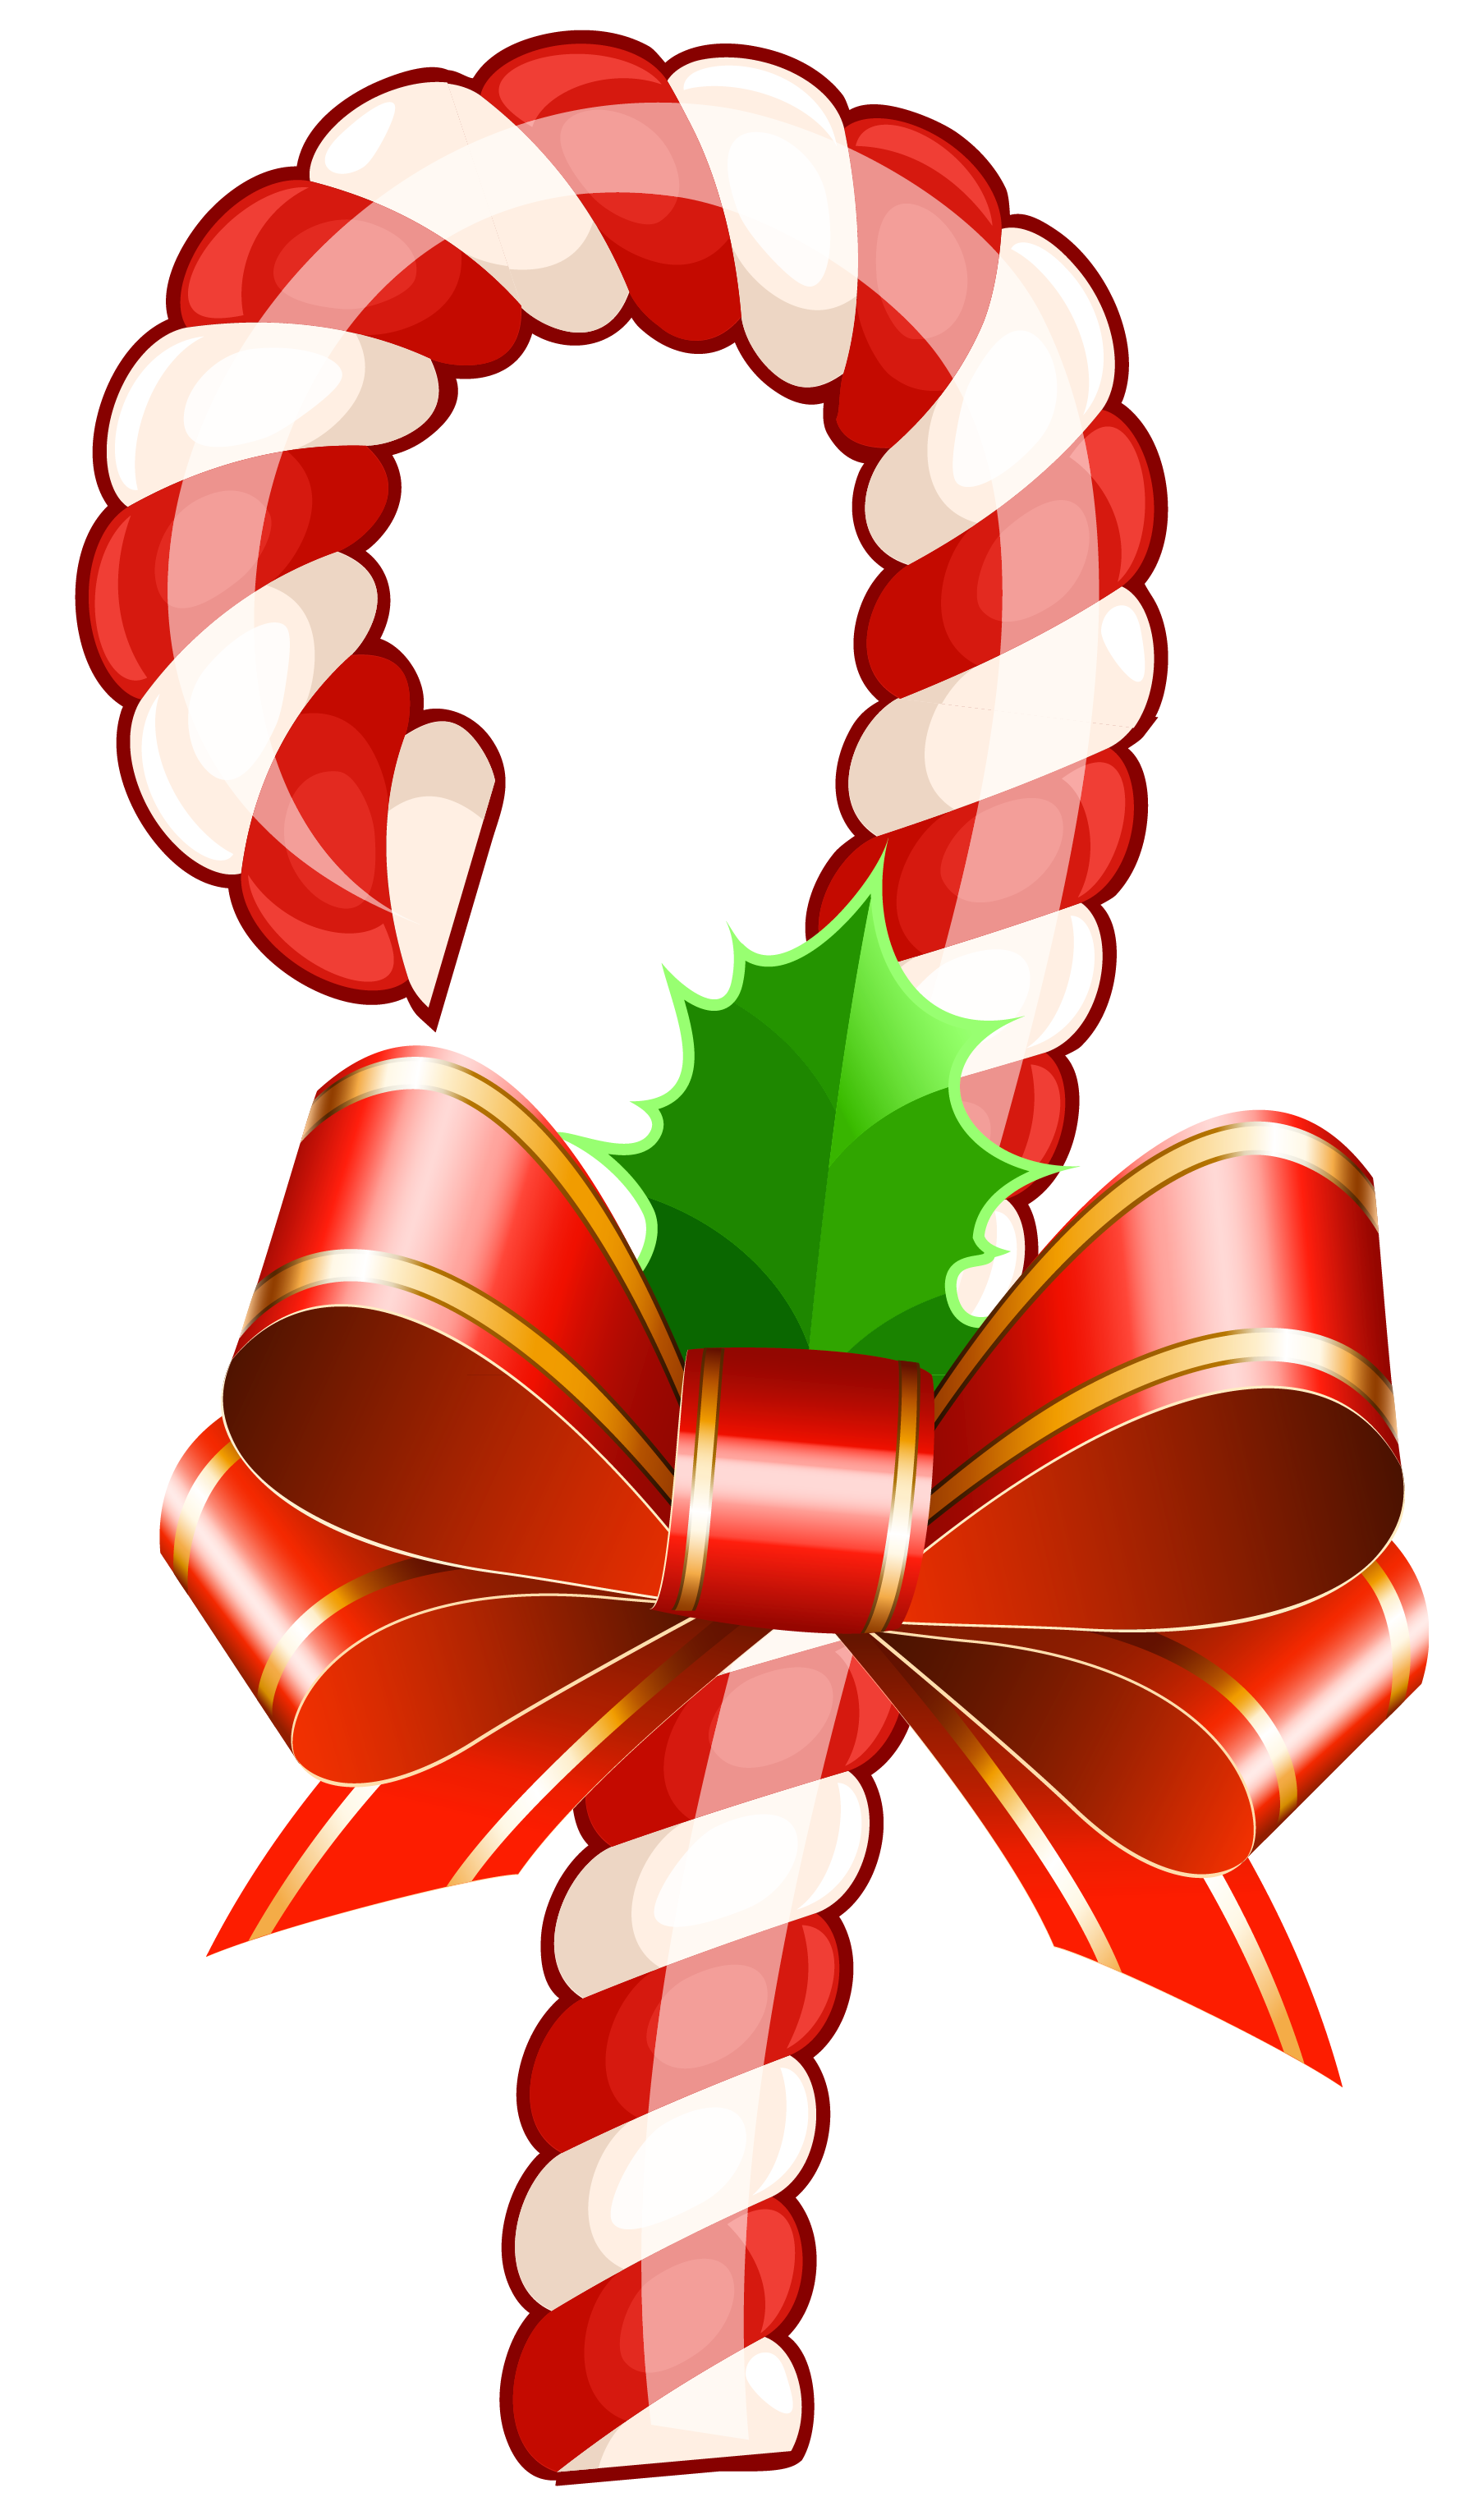 Large Transparent Christmas Candy Cane PNG Clipart